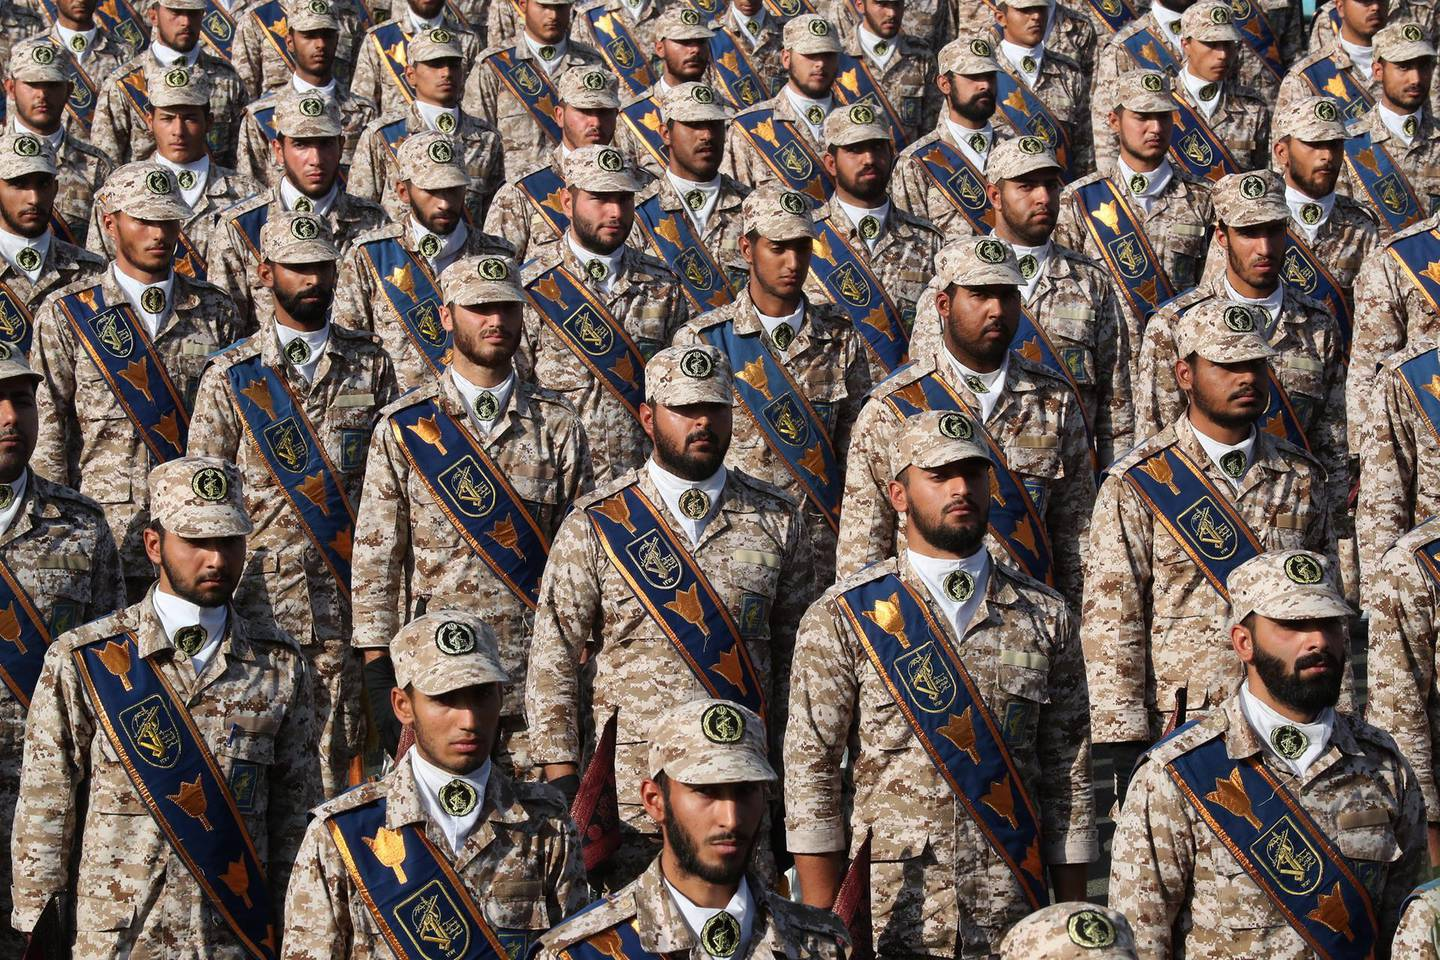 epa07860408 A handout picture made available by the presidential office shows Iranian soldiers  during the annual military parade marking the Iraqi invasion in 1980, which led to an eight-year-long war (1980-1988), in Tehran, Iran, 22 September 2019. Media reported that Rouhani said that he would present a cooperation plan for peace in the region during the UN summit in New York.  EPA/Iranian President Office HANDOUT  HANDOUT EDITORIAL USE ONLY/NO SALES